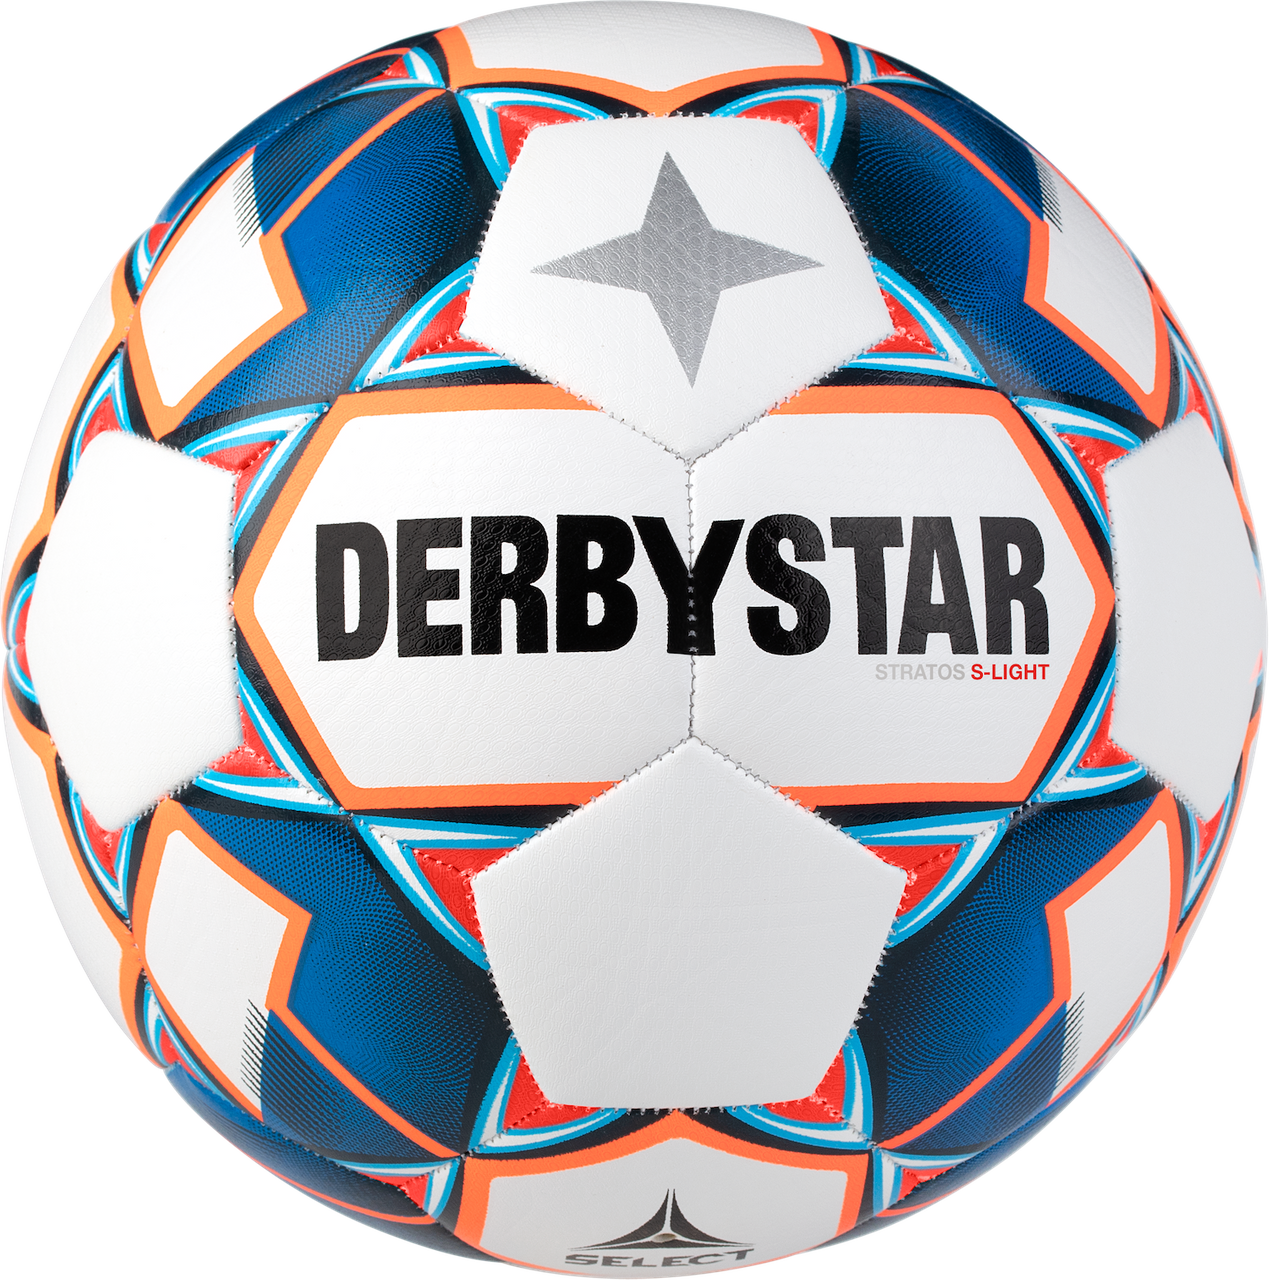 DERBYSTAR Jugendball - STRATOS S-LIGHT